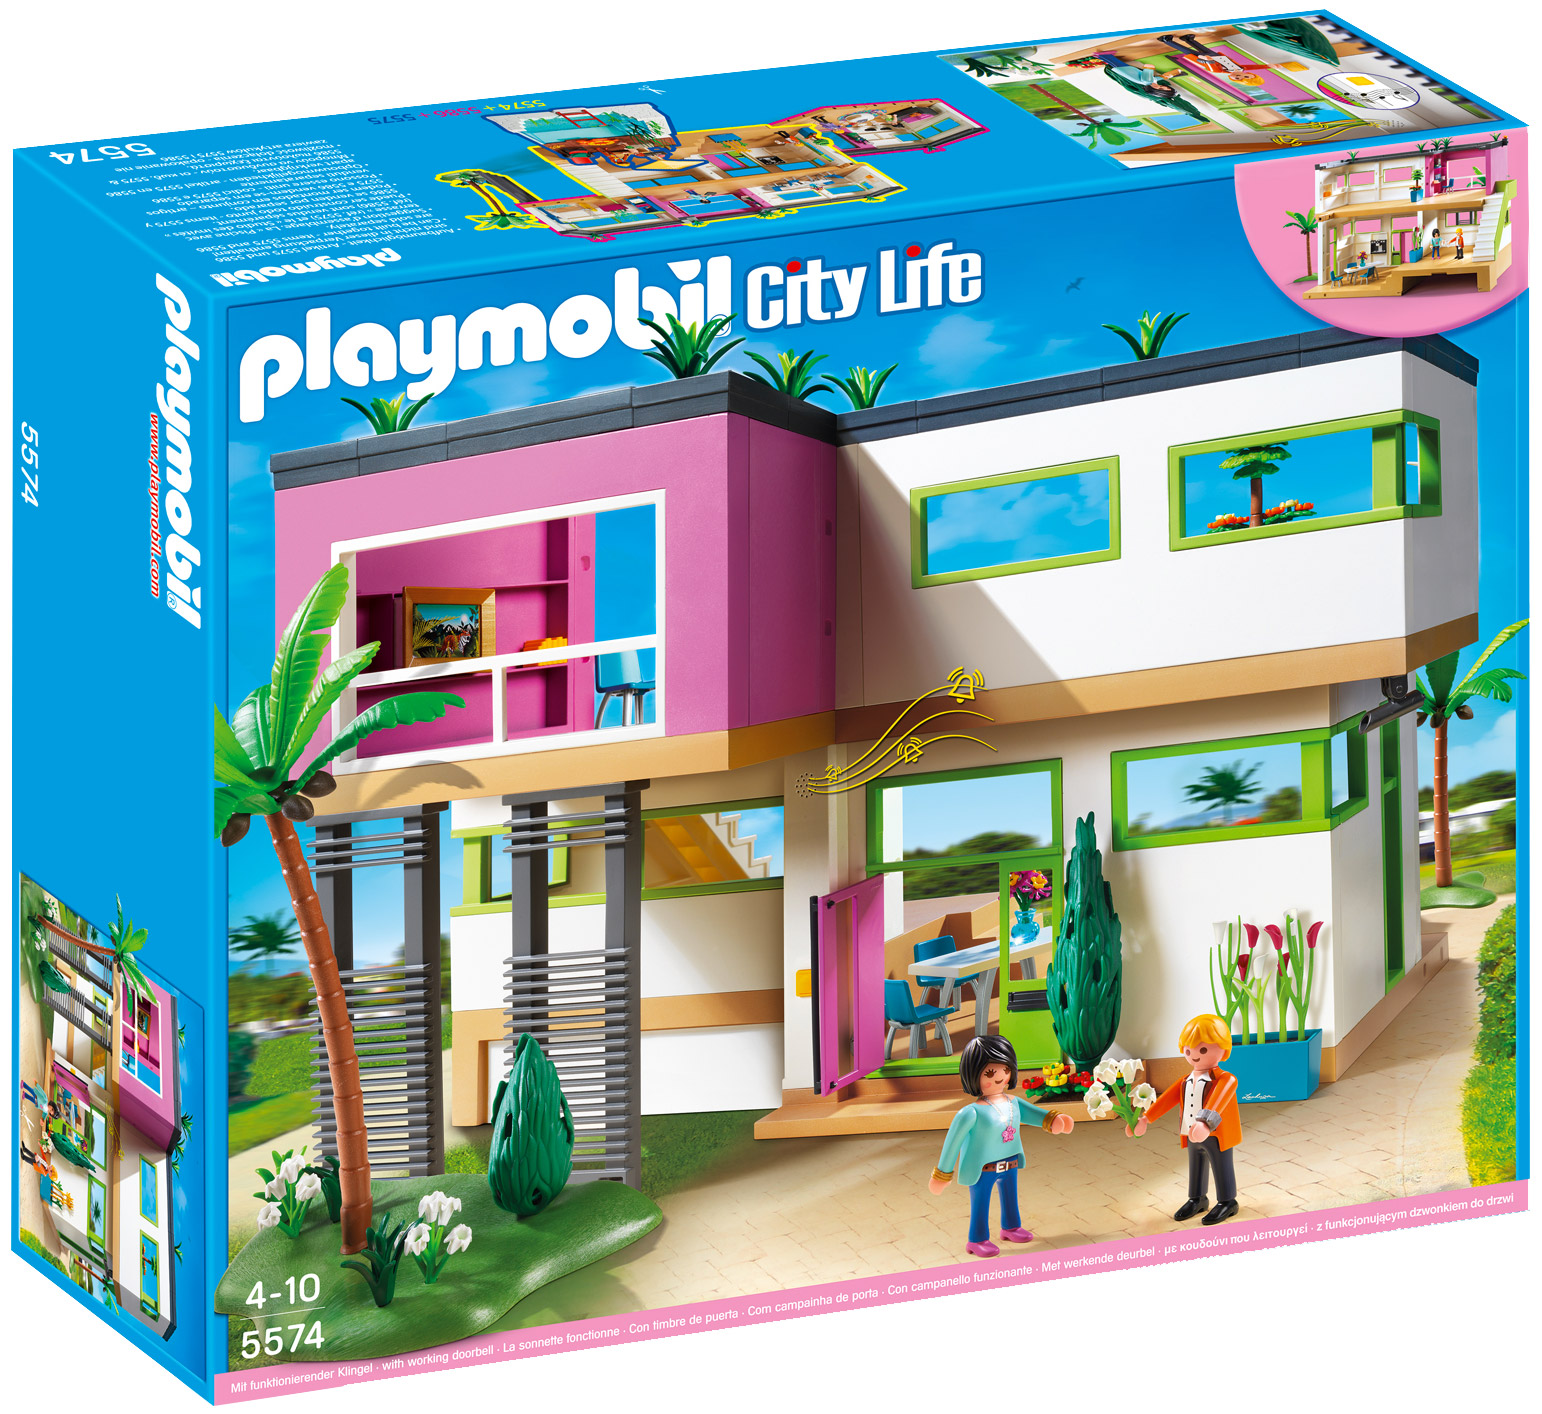 Best maison moderne playmobil klerelo pictures awesome interior home satellite for Maison moderne playmobil